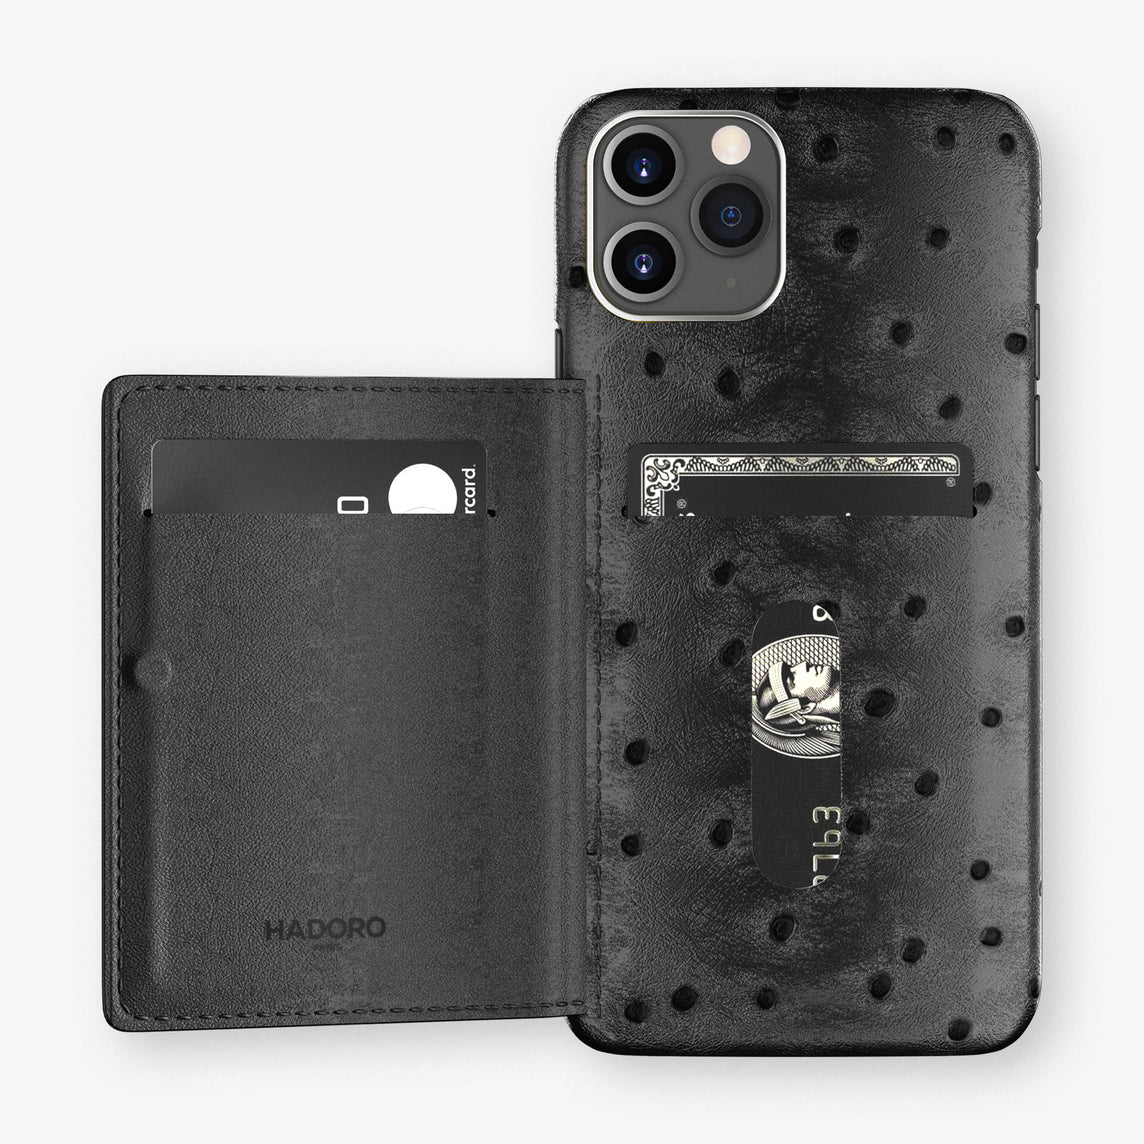 Ostrich Card Holder Flap Case iPhone 11 Pro | Black - Stainless Steel